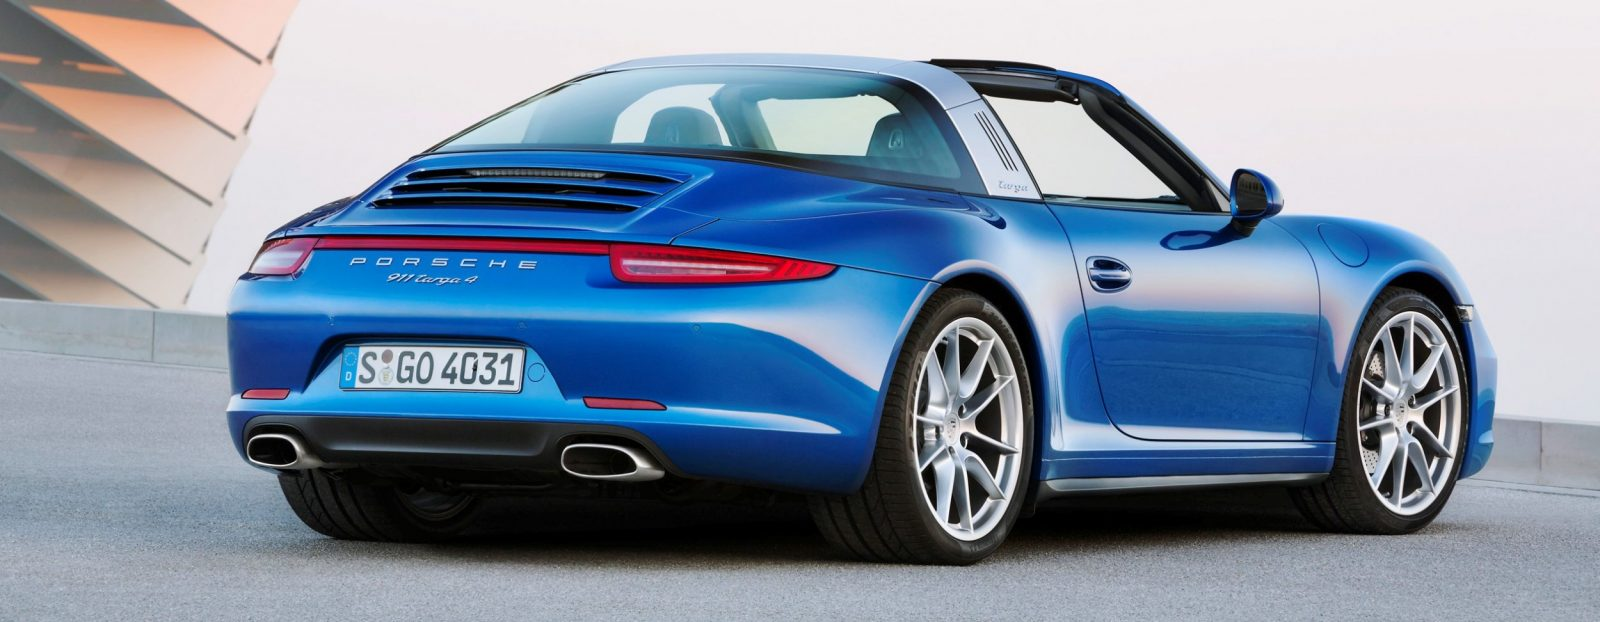 2014 Porsche 911 Targa4 and Targa4S - Roof Animations of 400HP Surf 'n Turf Supercar 12